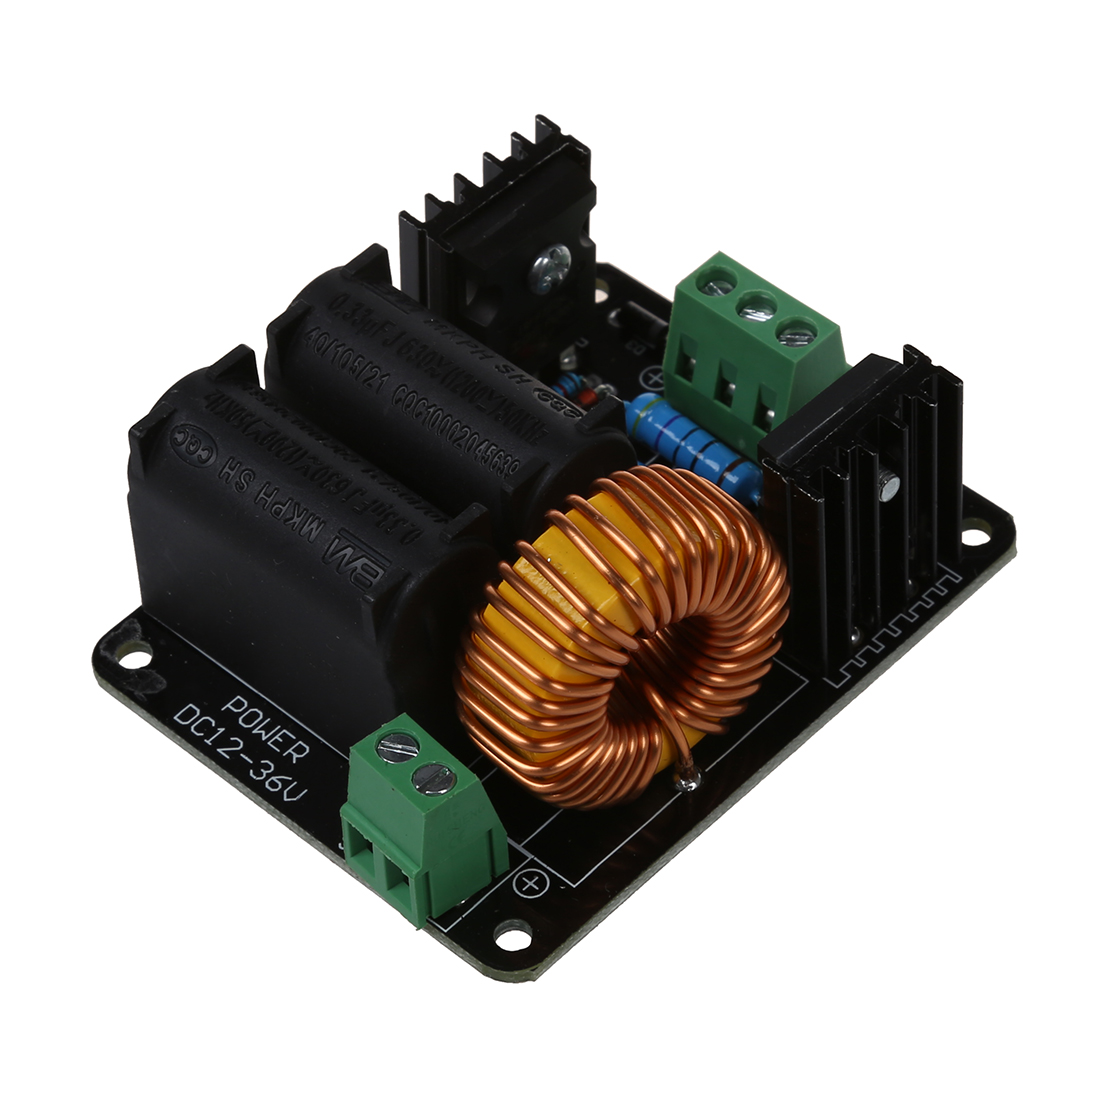 hight resolution of 12v 36v zvs tesla coil flyback driver marx generator jacob s ladder ignition coil